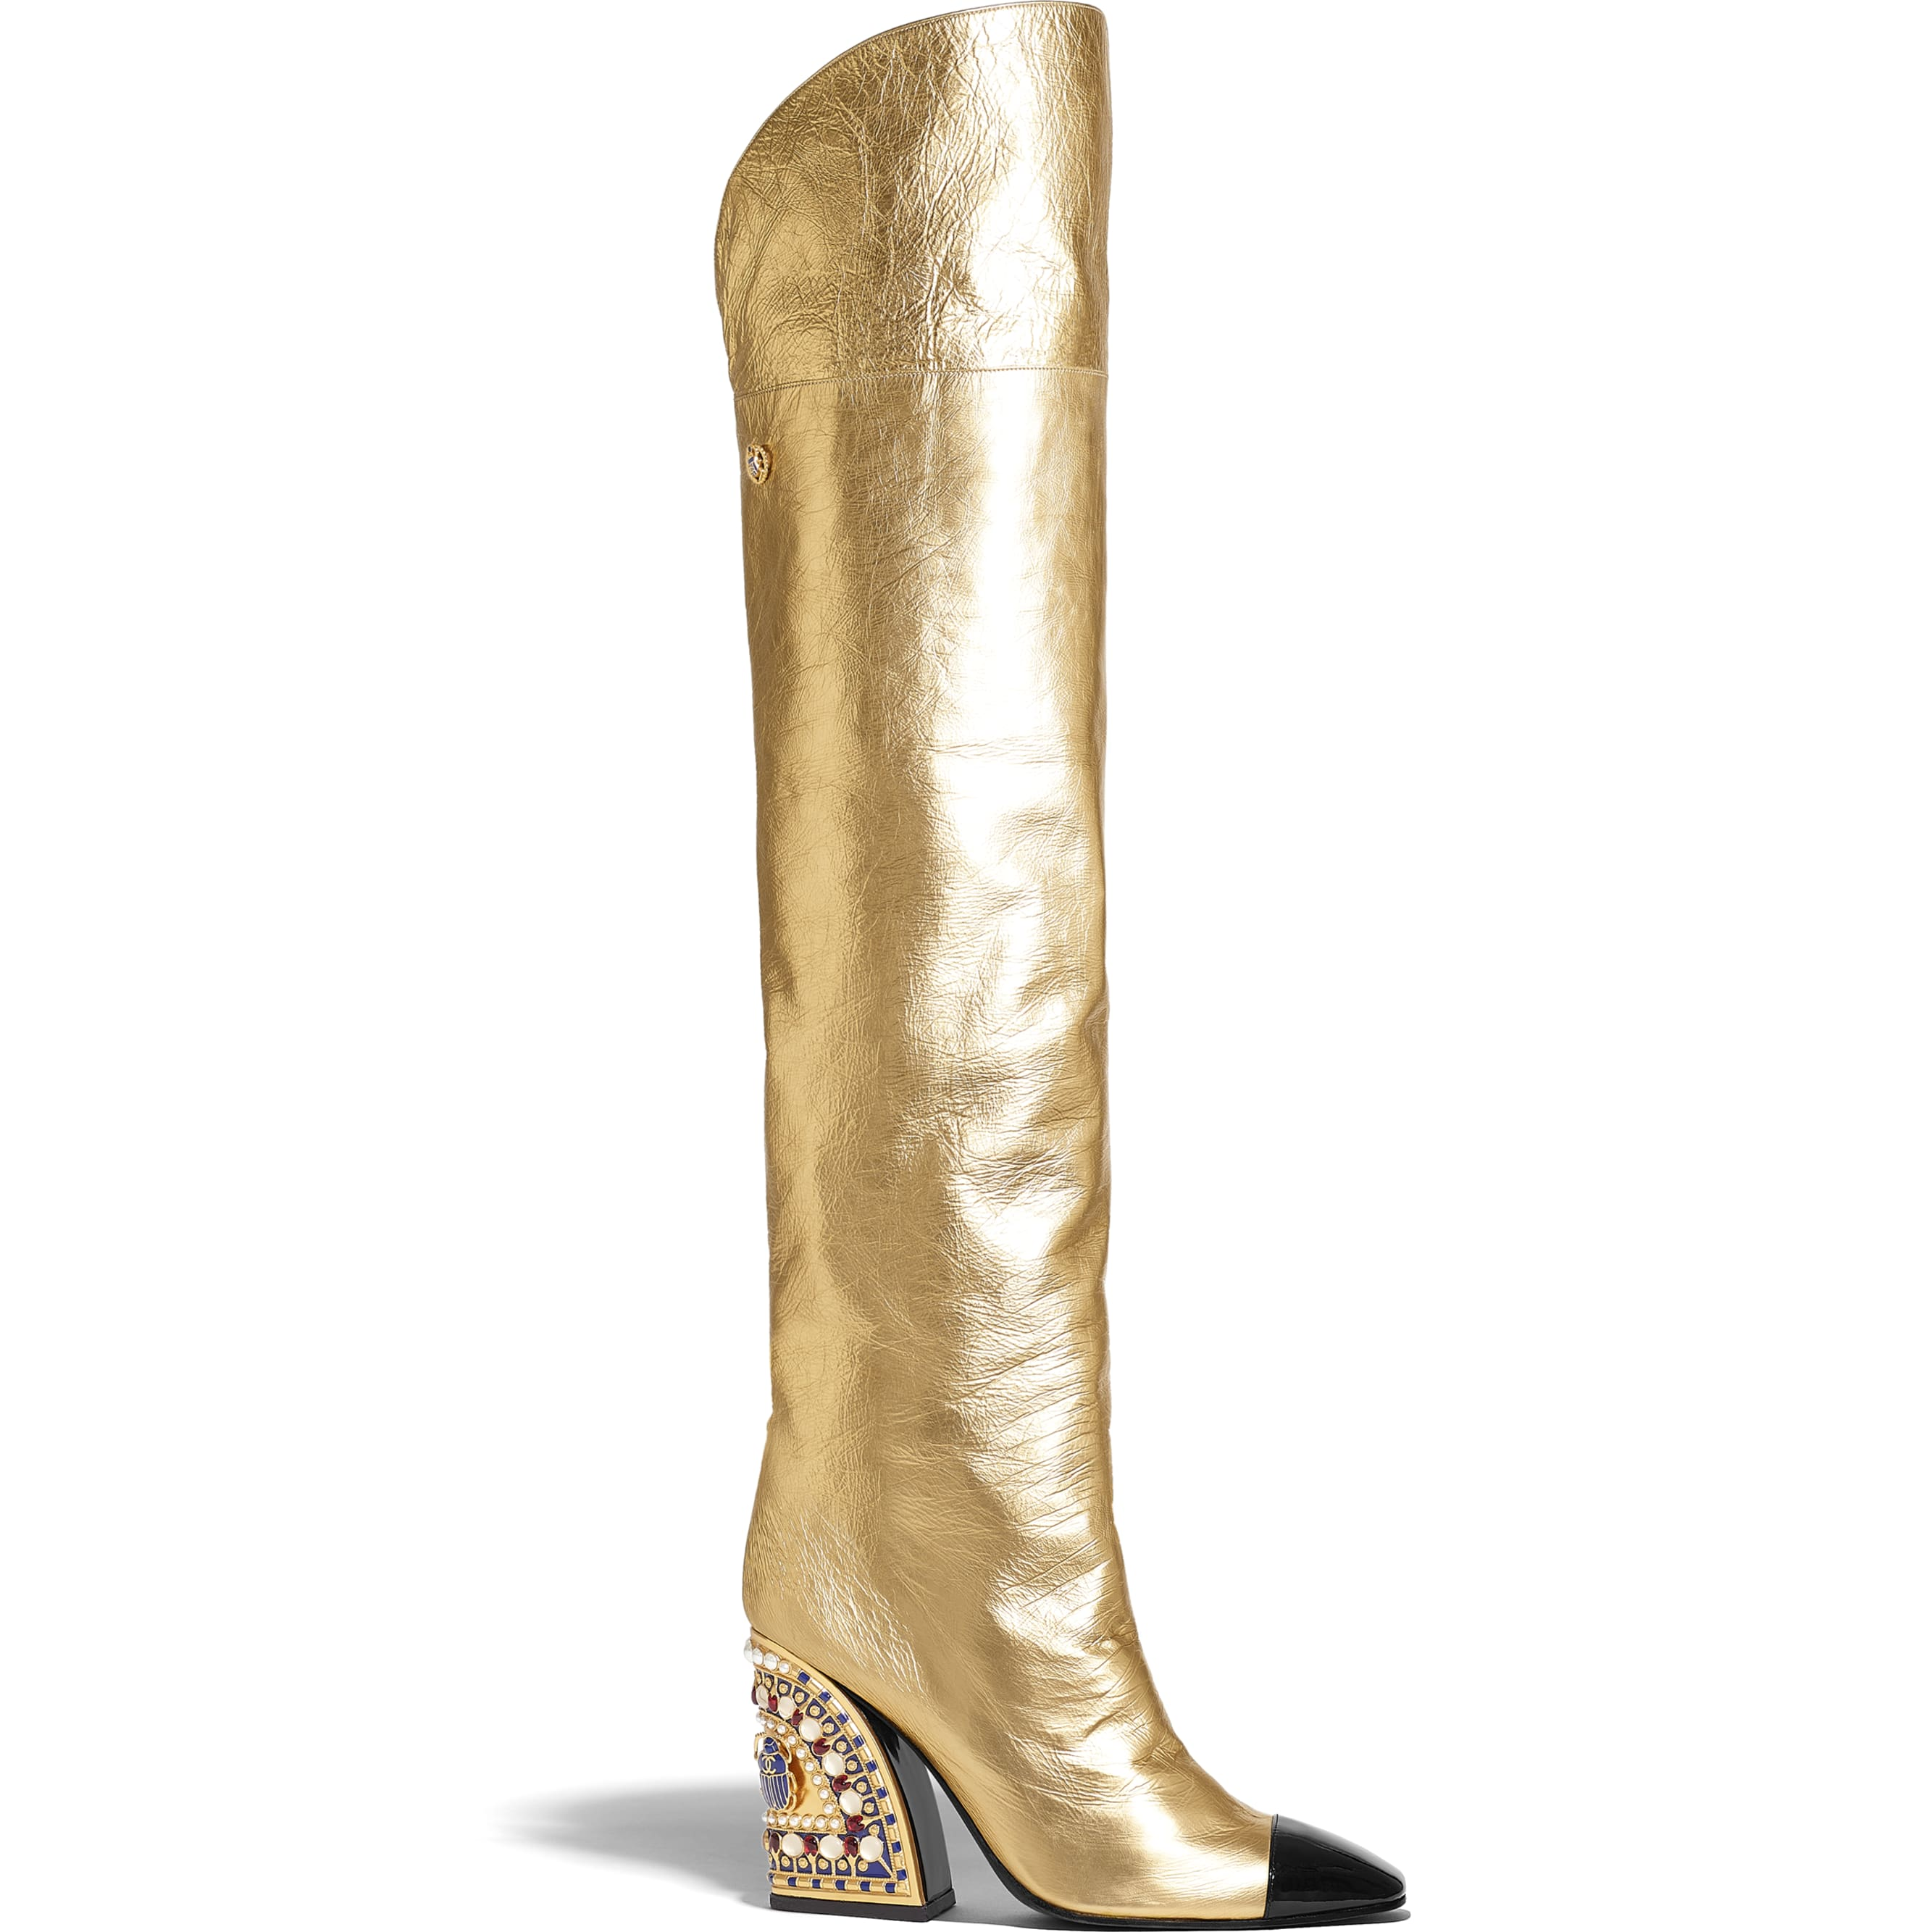 High Boots - Gold & Black - Laminated Lambskin & Patent Calfskin - Default view - see standard sized version